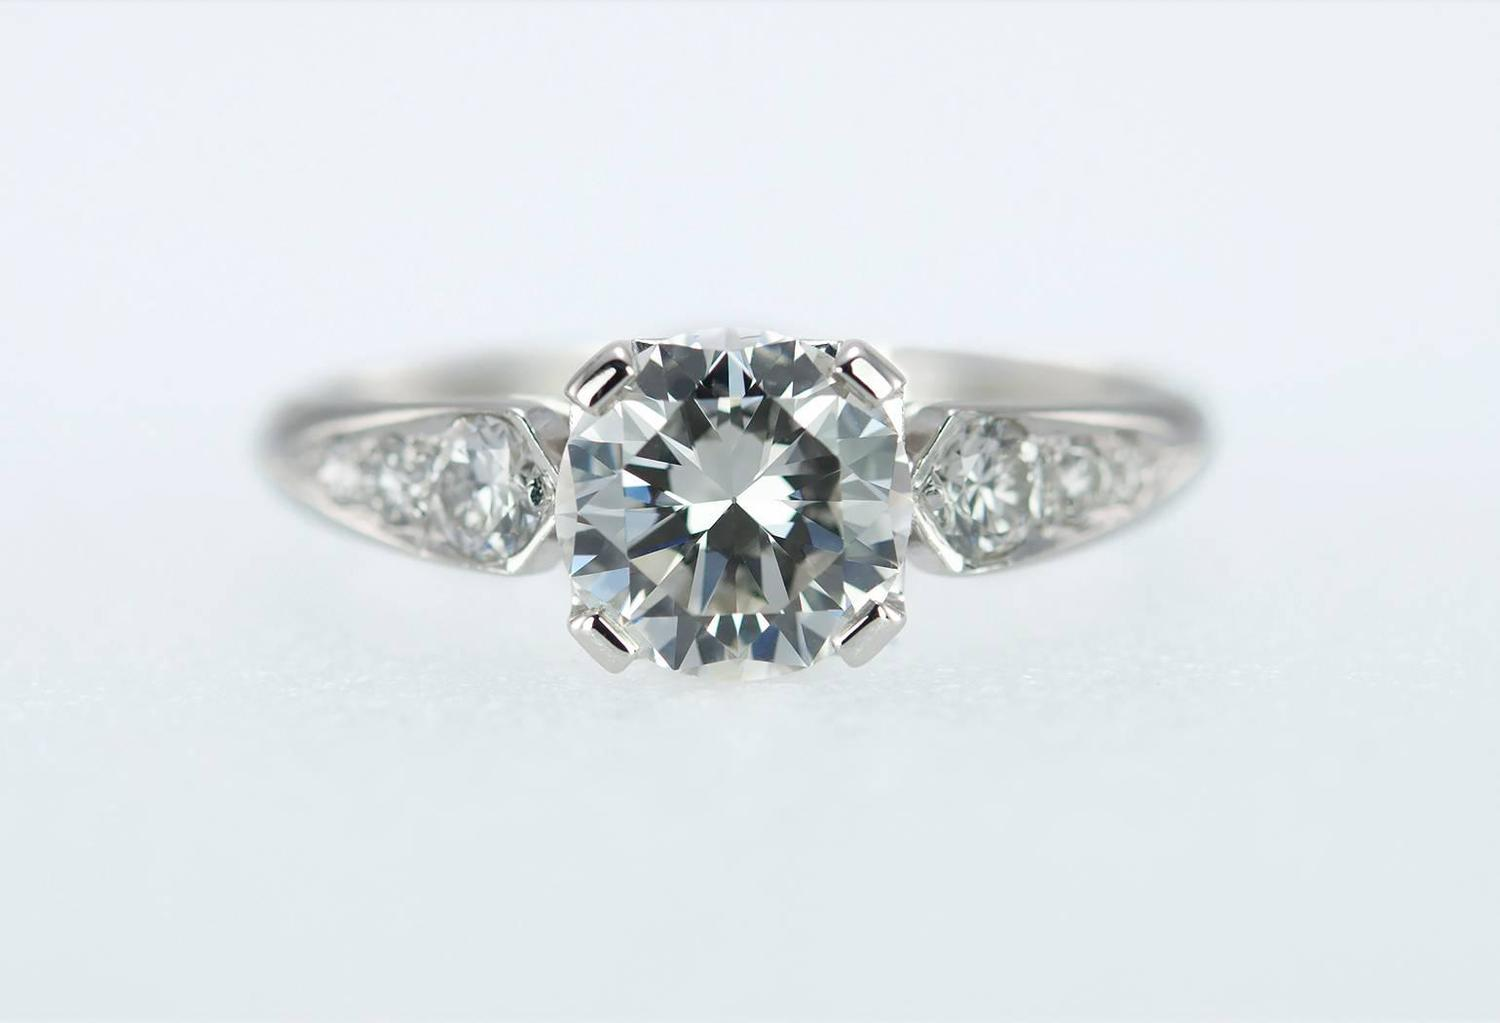 1 05 Carat Diamond and Platinum 1950s Engagement Ring For Sale at 1stdibs